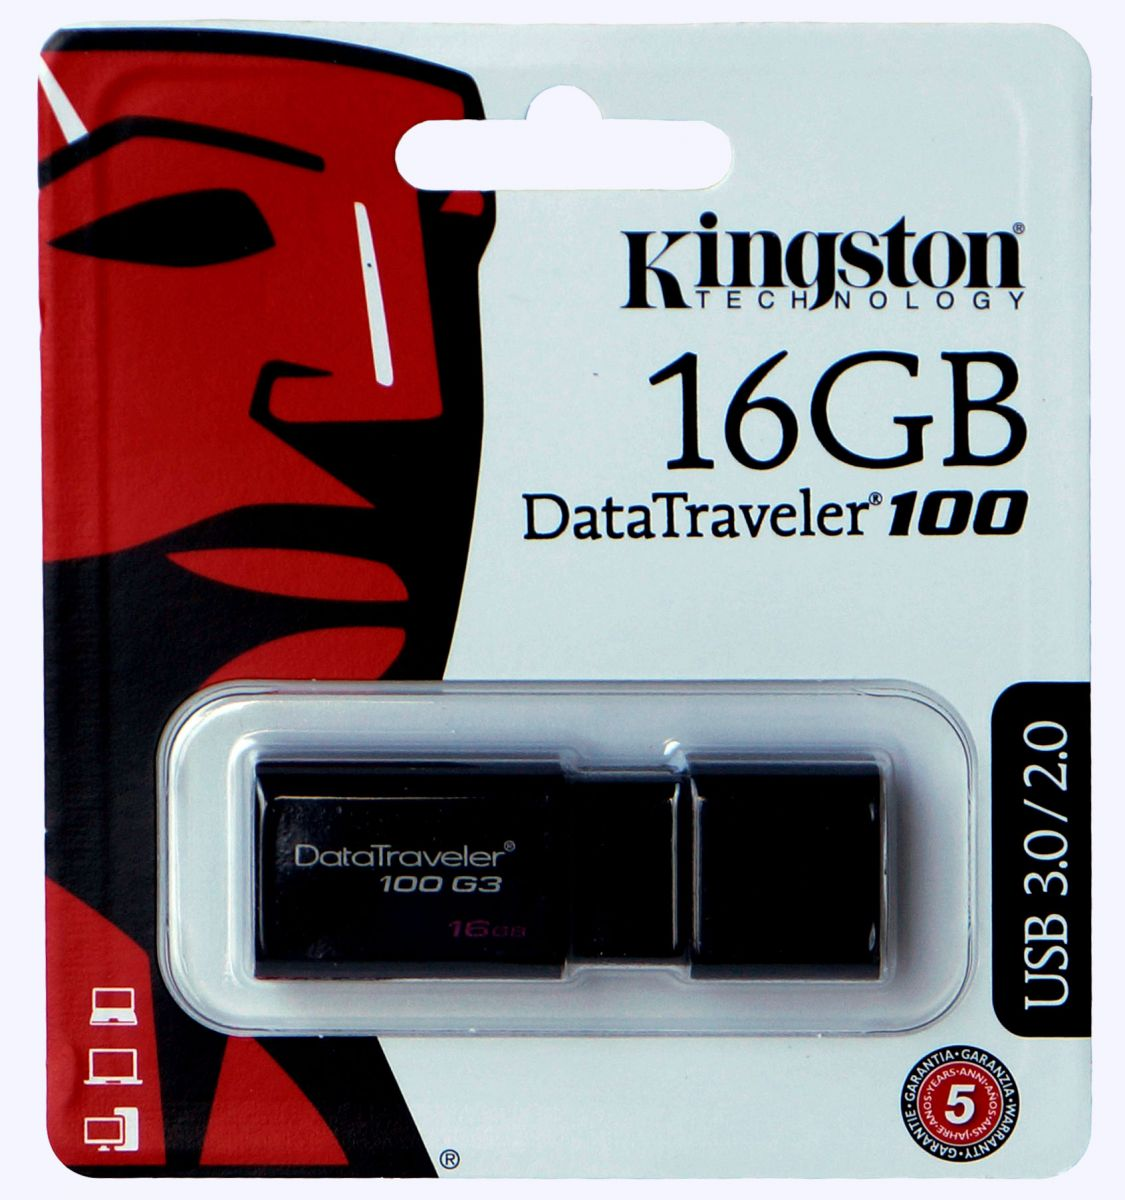 USB-Stick Kingston Datatraveler 16GB